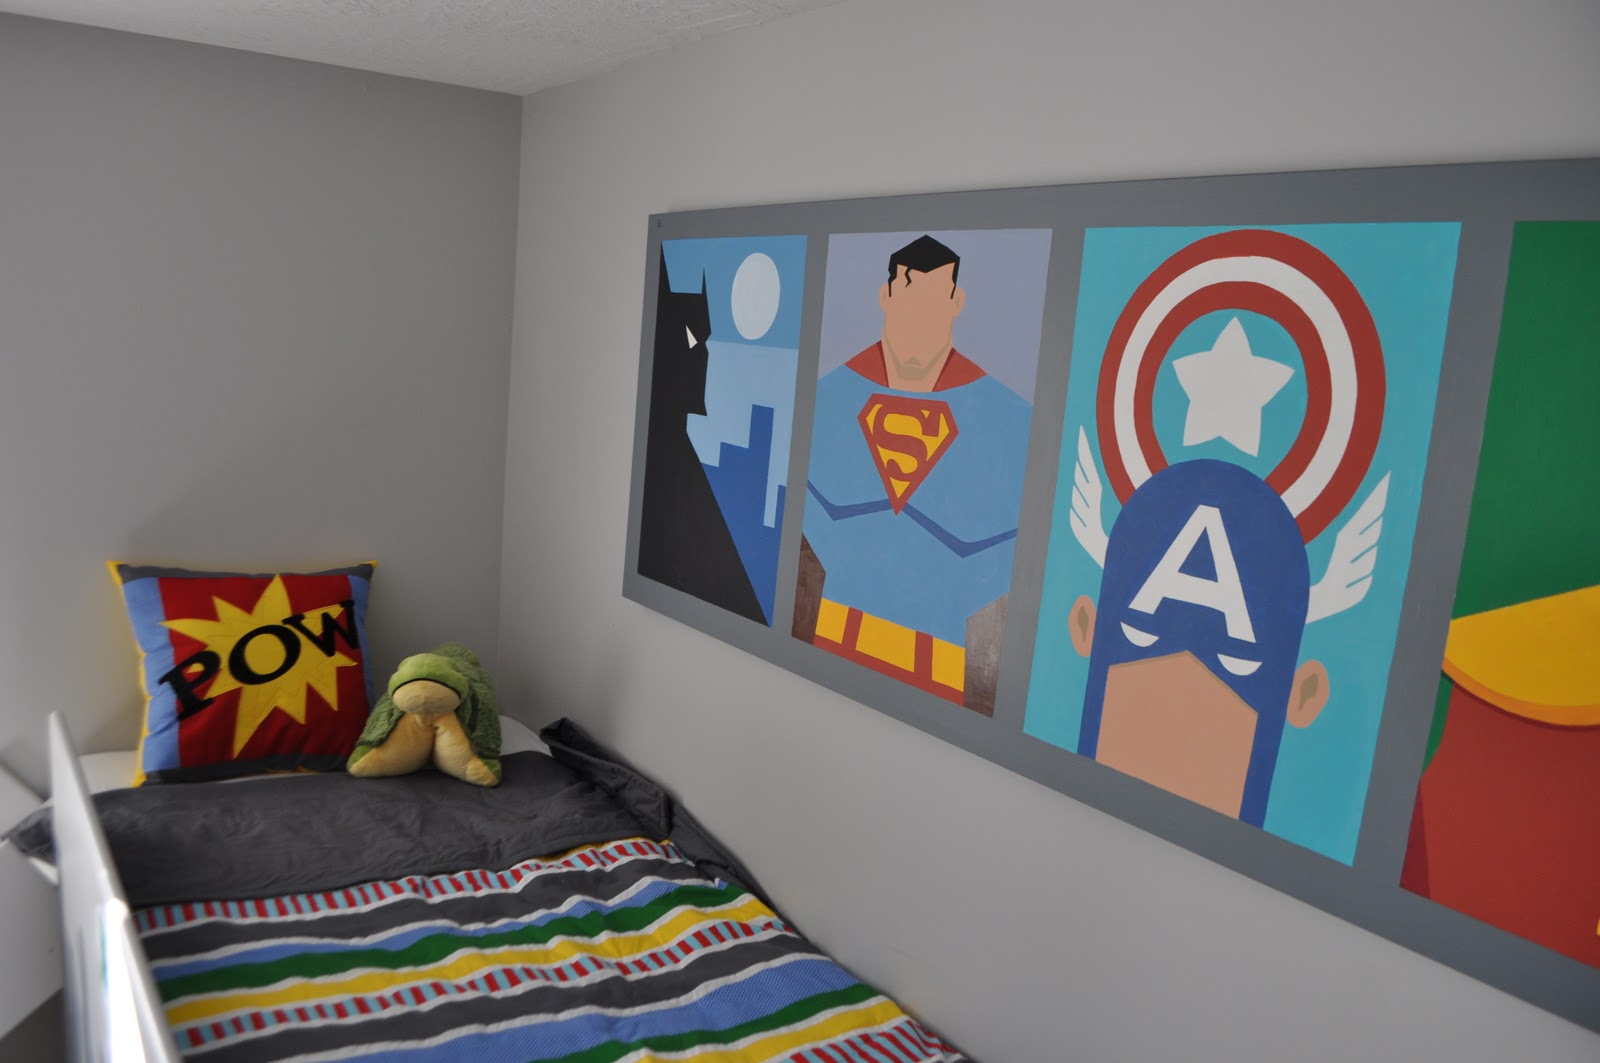 themed-rooms-funny-grey-superhero-themed-kids-bedroom-decorating-with-loft-bed-and-colorful-striped-bedding-stylish-superhero-kids-room-design-inspirations